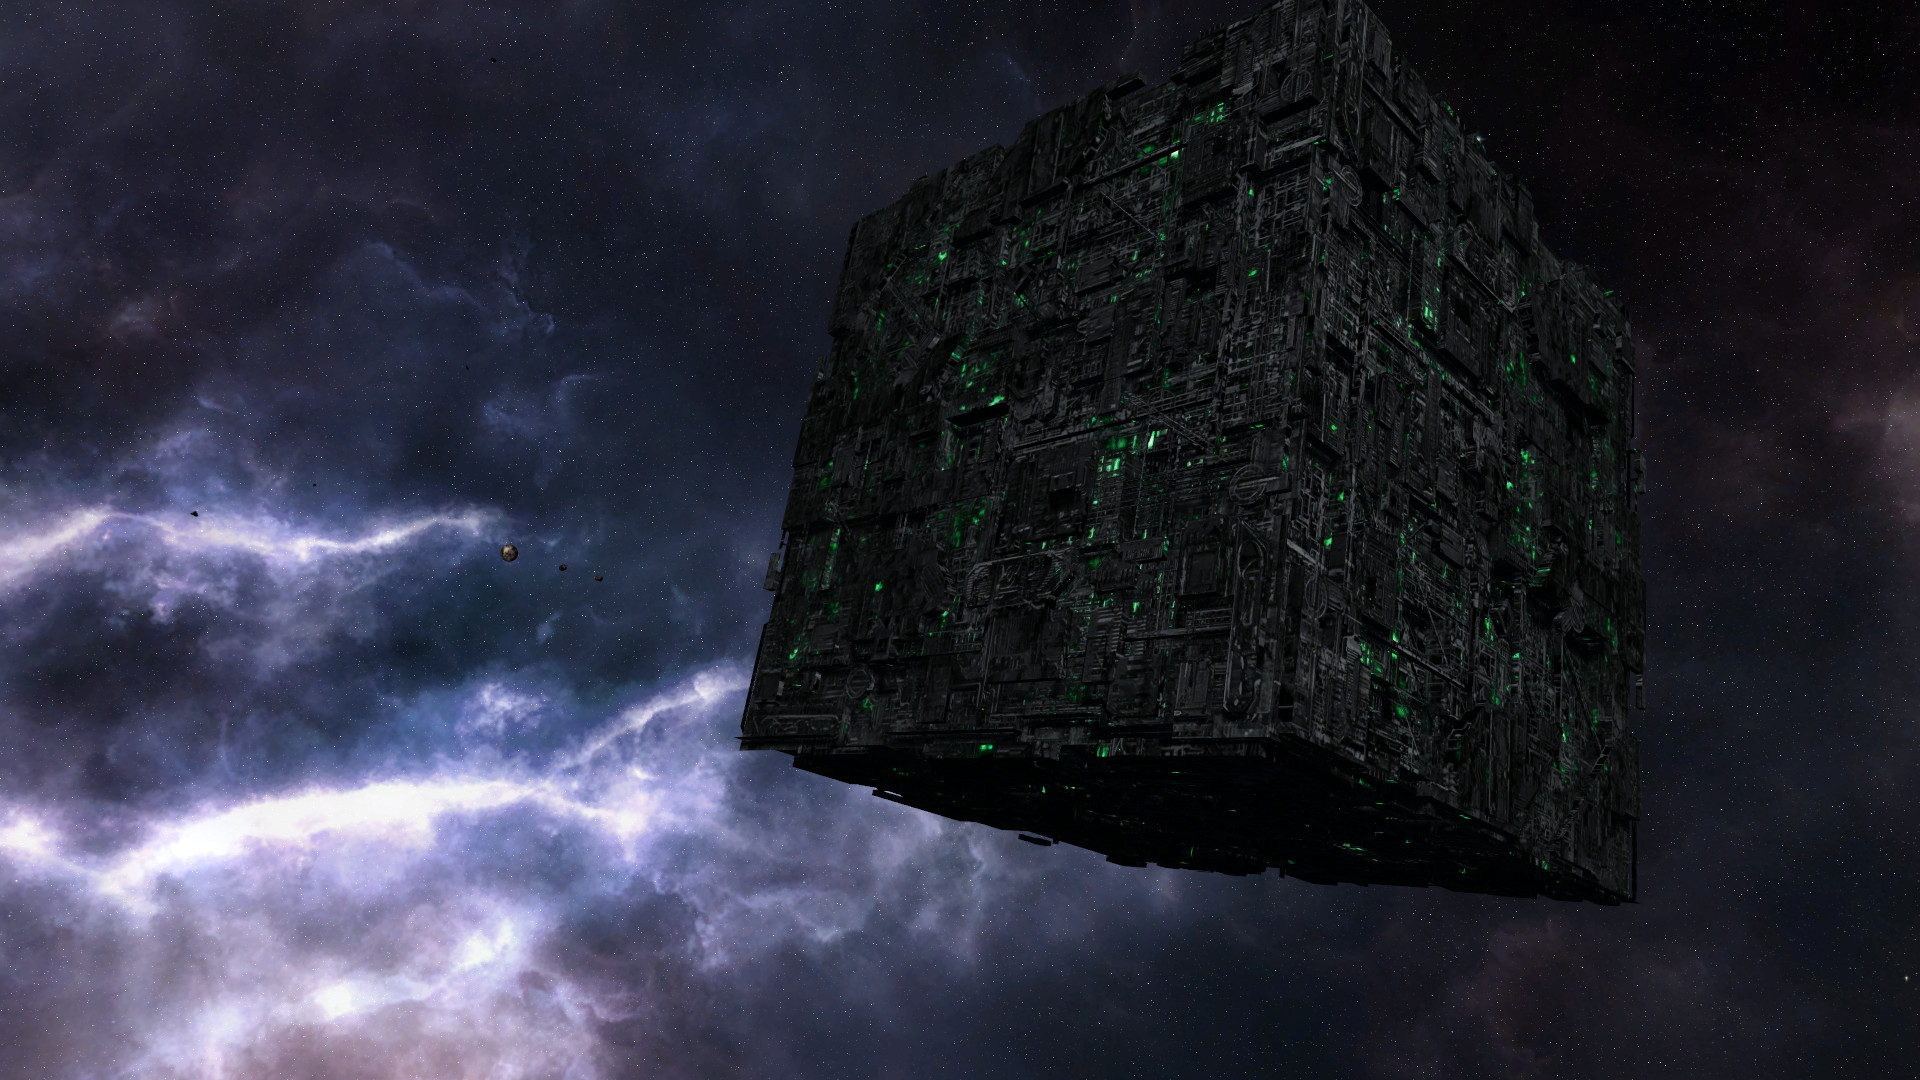 1920x1080 ... Borg Star Trek BackgroundFor Desktop, Laptop and Mobiles. Here You Can  Download More than 5 Million Photography collections Uploaded By Users.